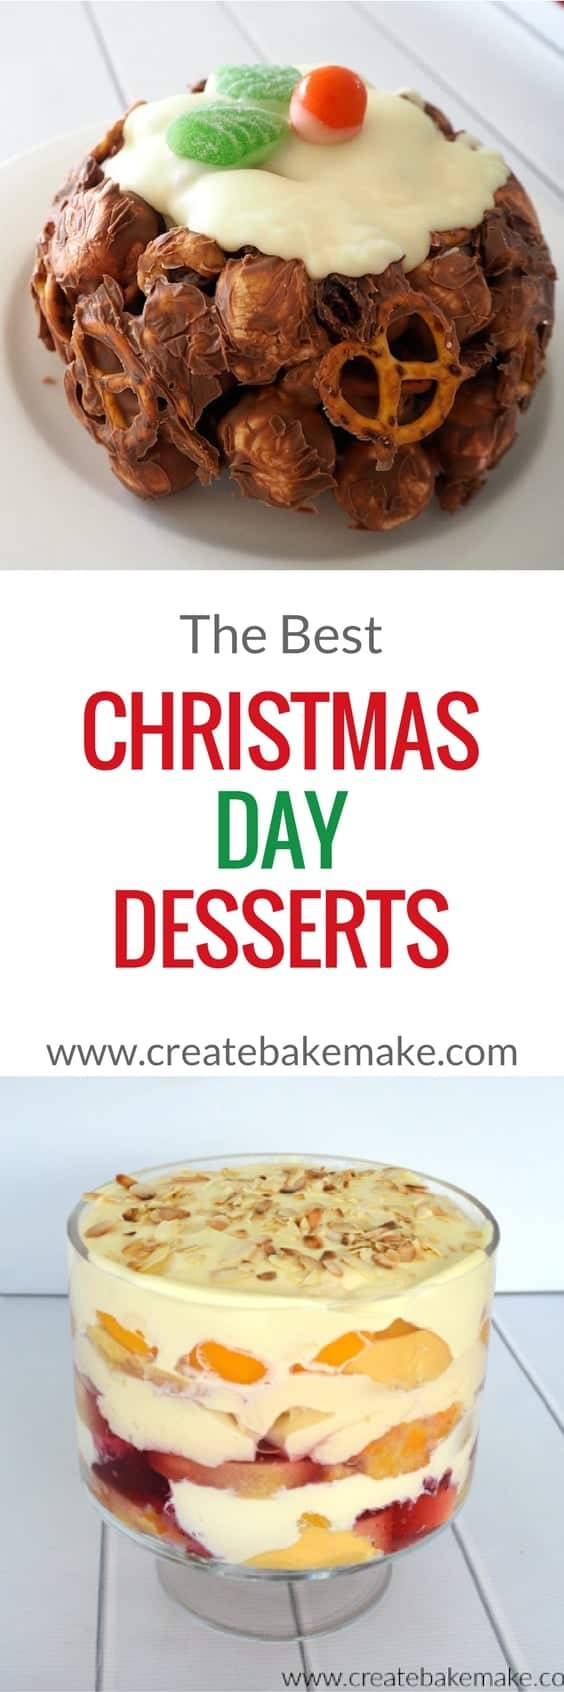 Easy Christmas Day Desserts recipes